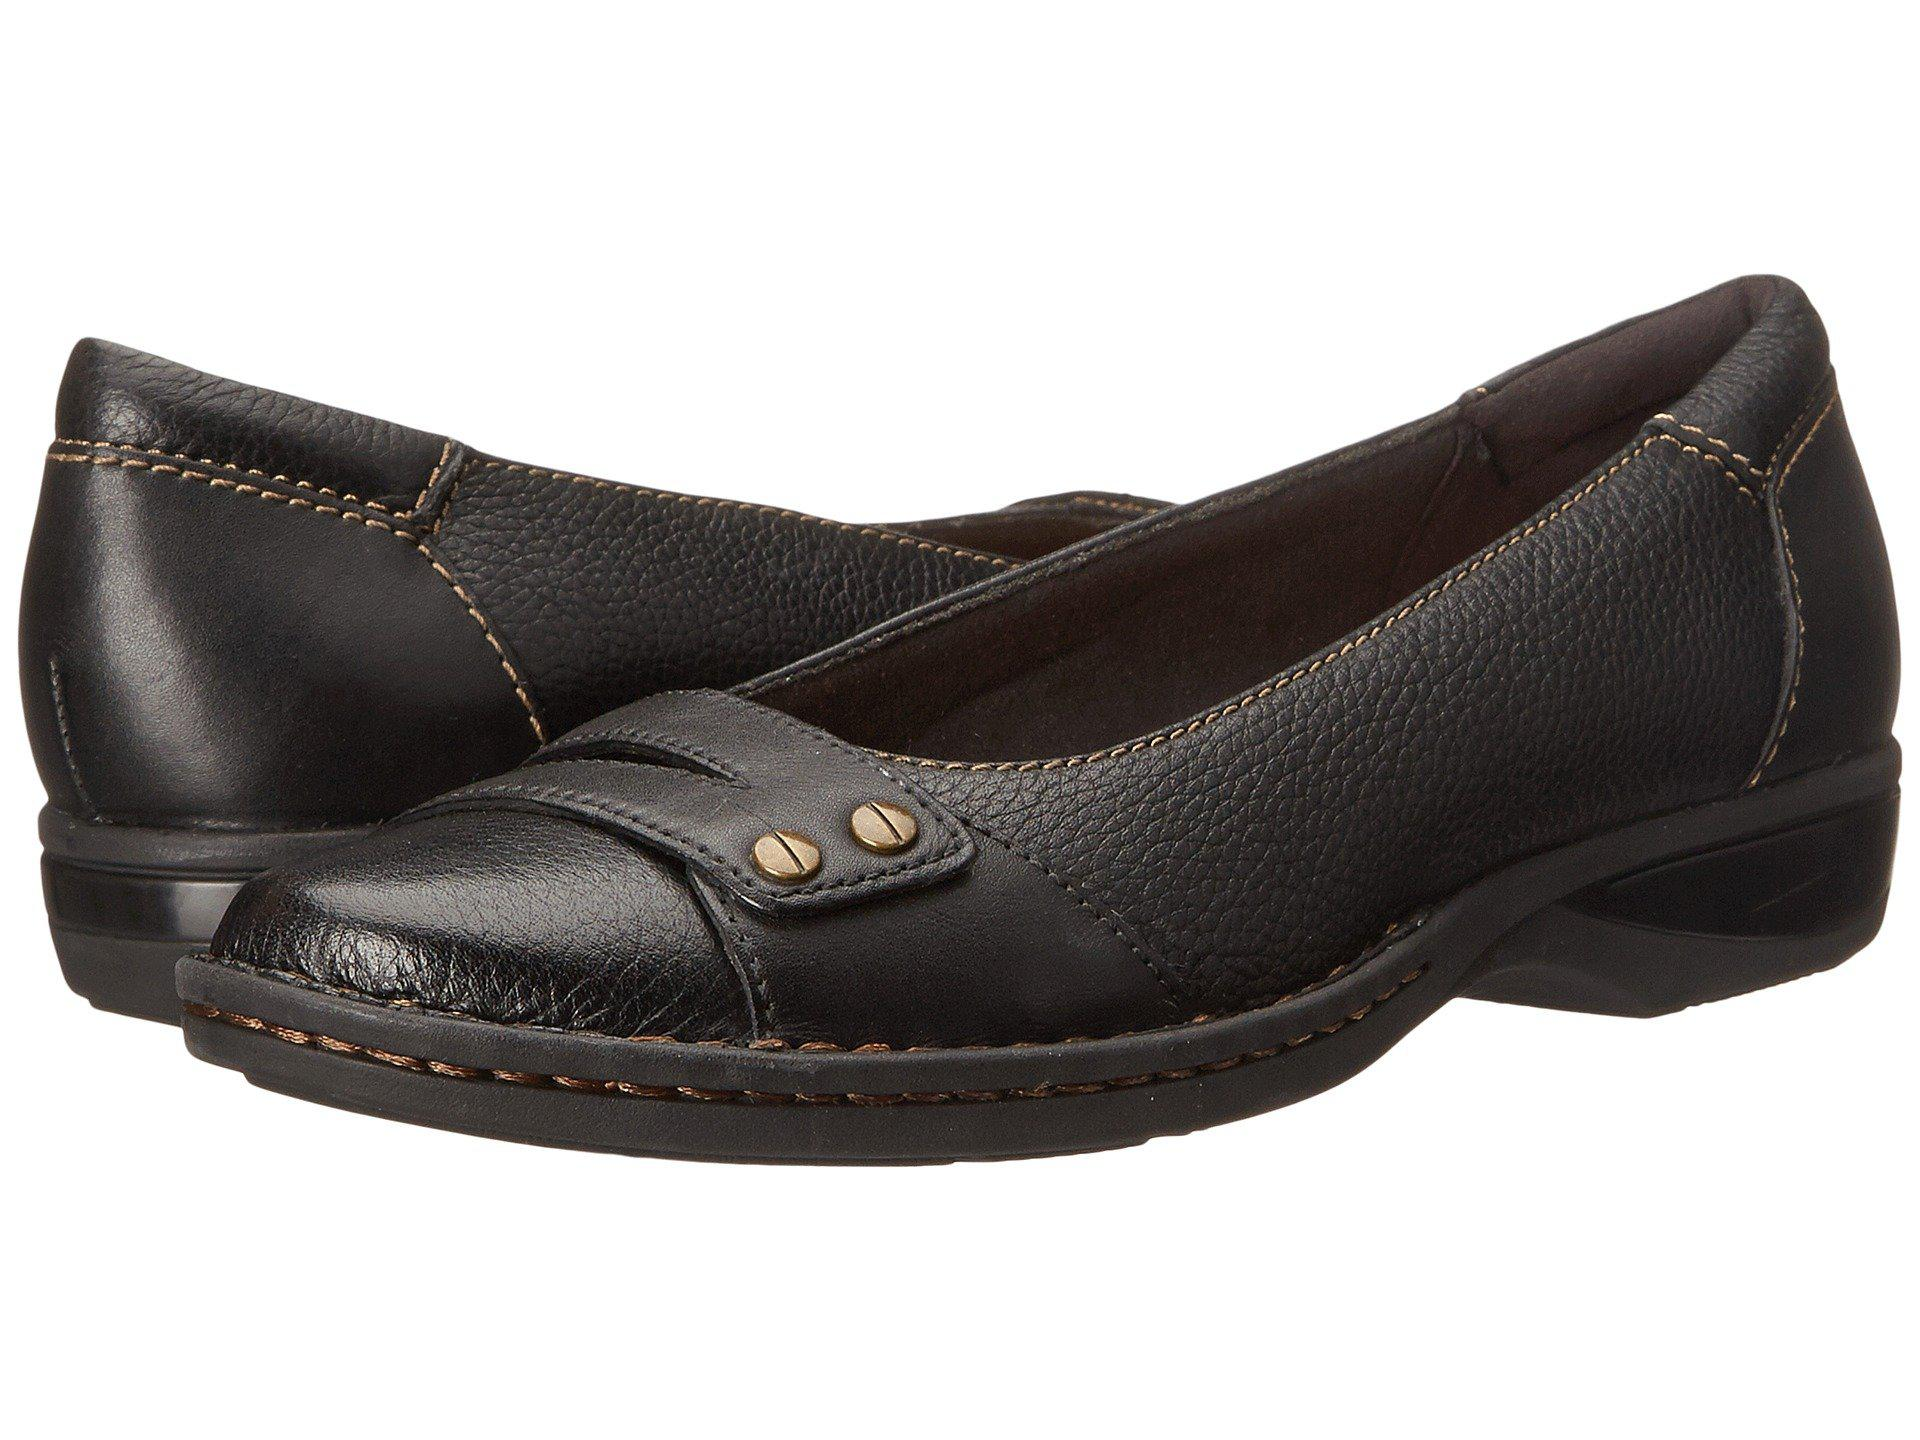 Clarks Pegg Alba Clarks- Black Leather flats